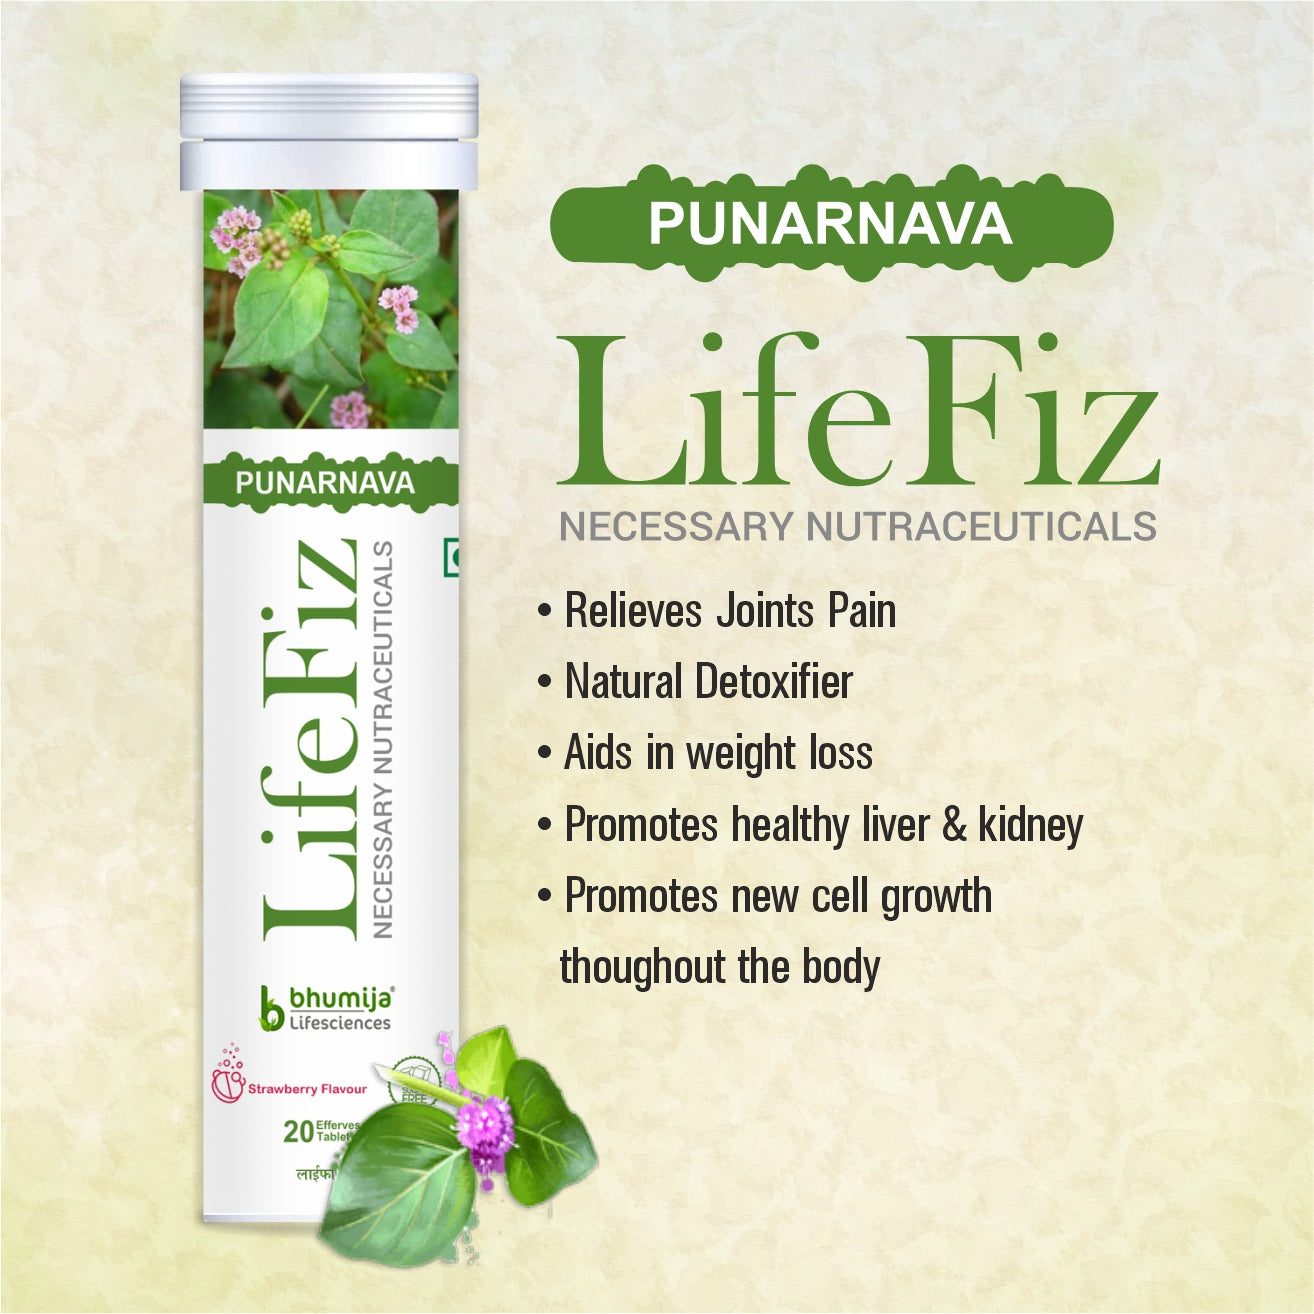 Bhumija Lifesciences Lifefiz Punarnava Vegetarian 20 Effervescent Tablets With Strawberry Flavour Pack of 1